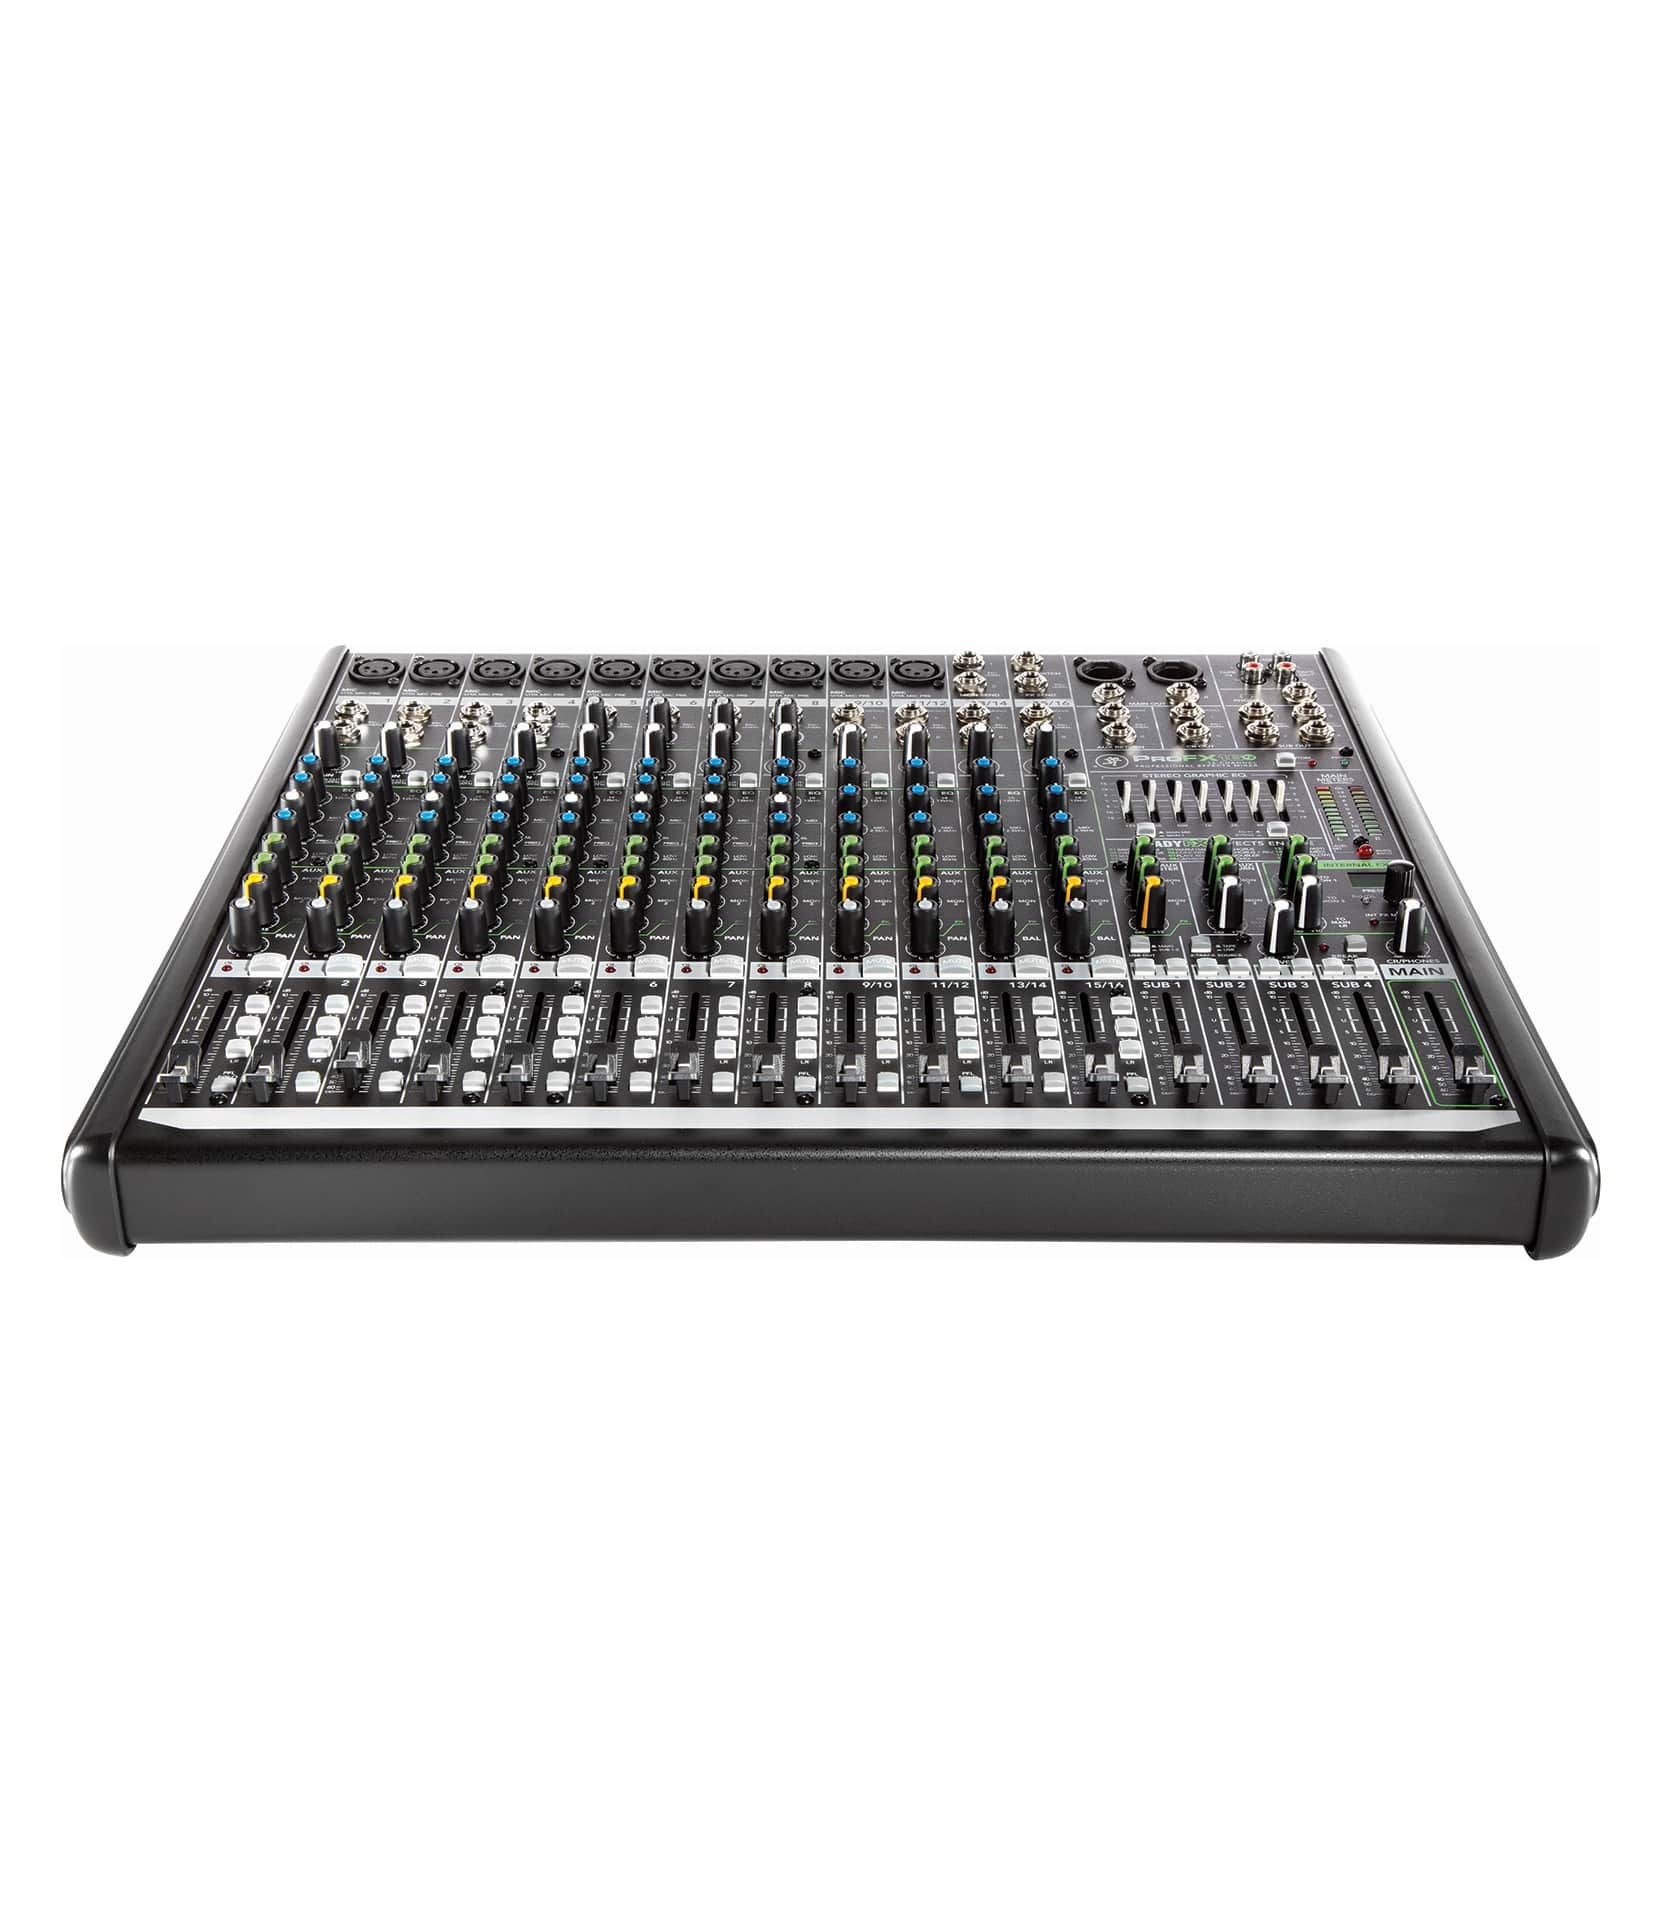 ProFX16v2 EU 16 channel 4 Bus Effects Mixer with U - Buy Online